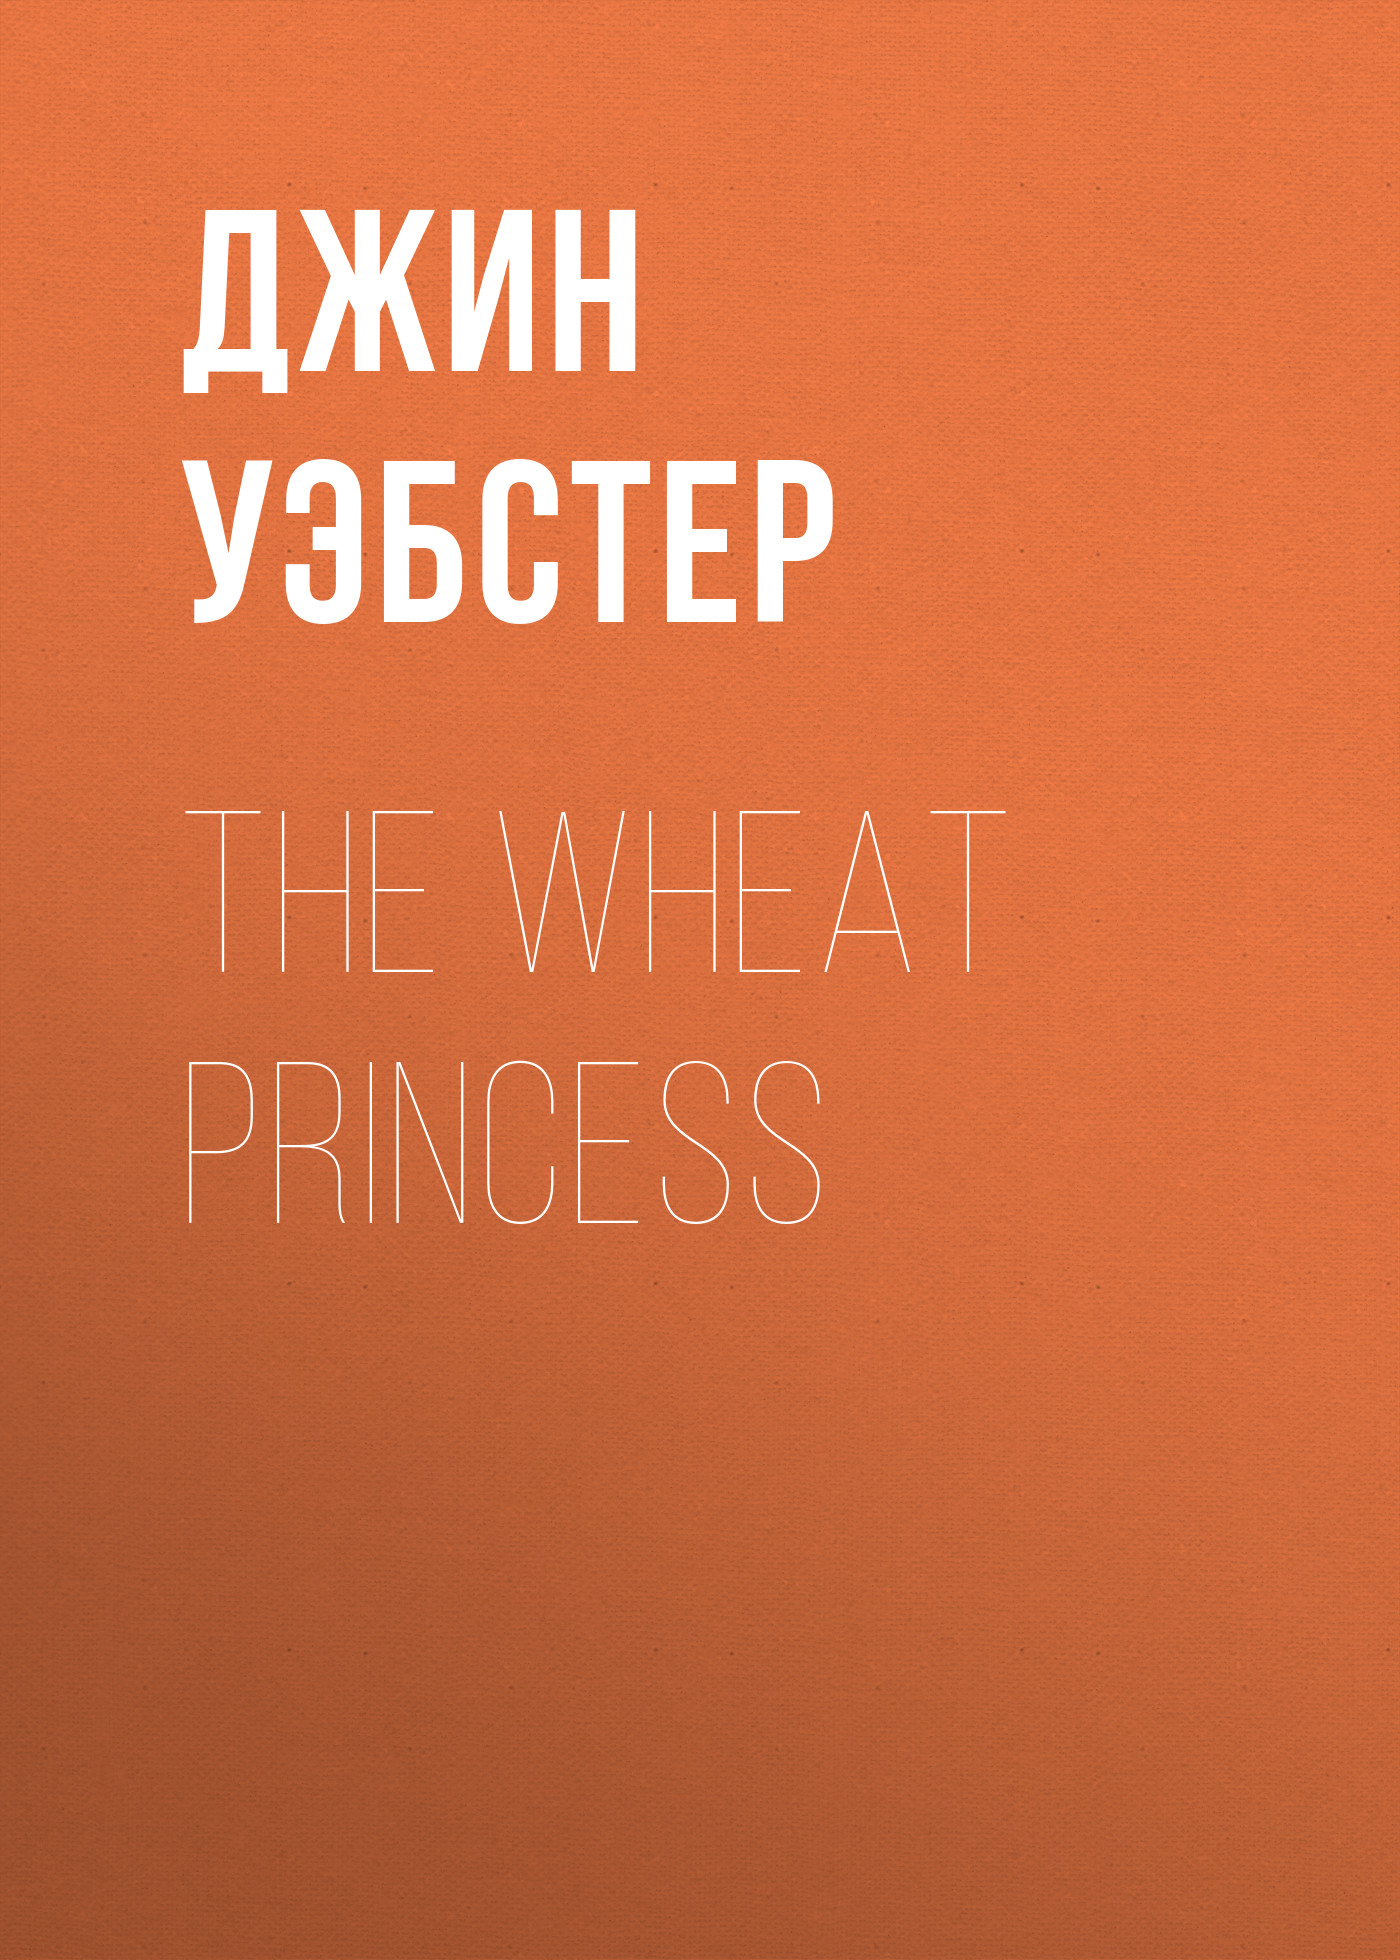 Джин Уэбстер The Wheat Princess цена и фото